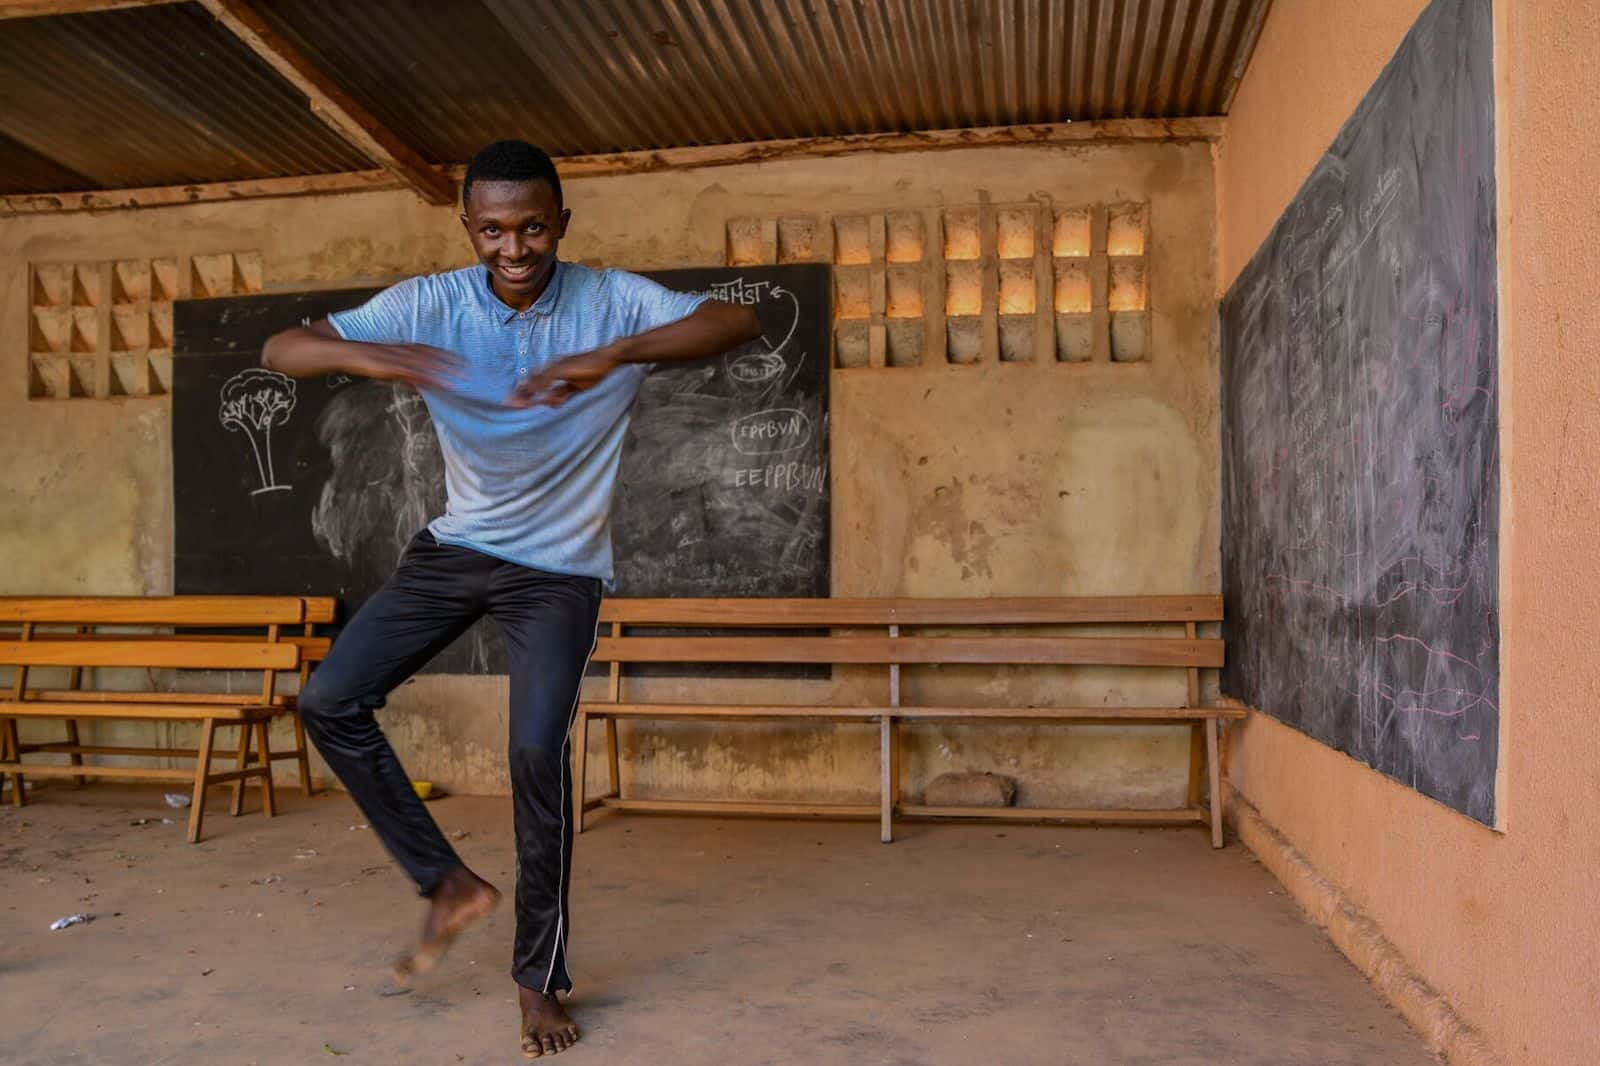 A young man dances in a classroom.